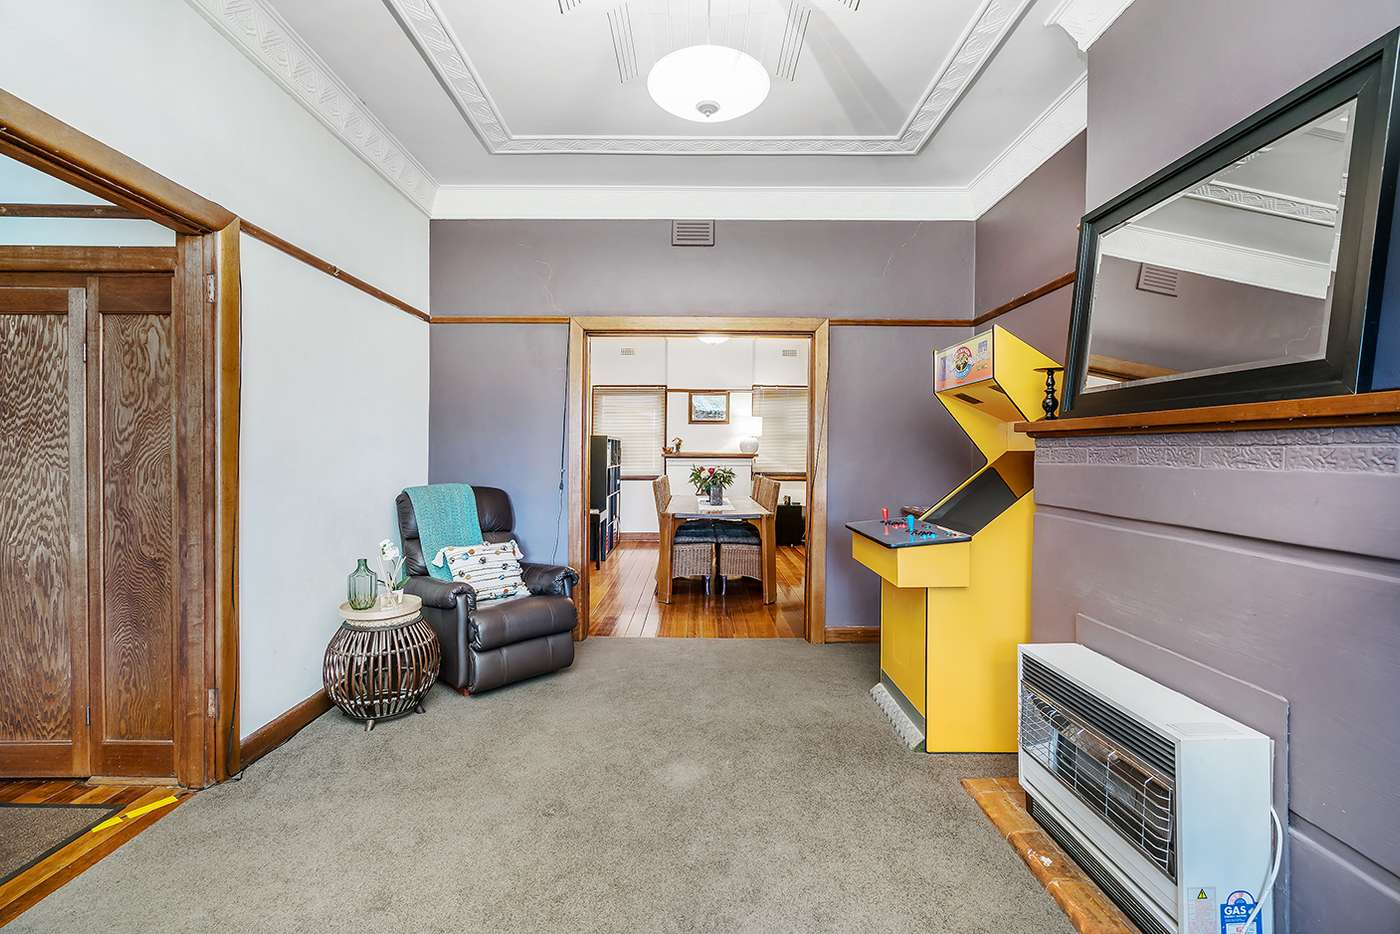 Fifth view of Homely house listing, 1012 Heidelberg Road, Ivanhoe VIC 3079